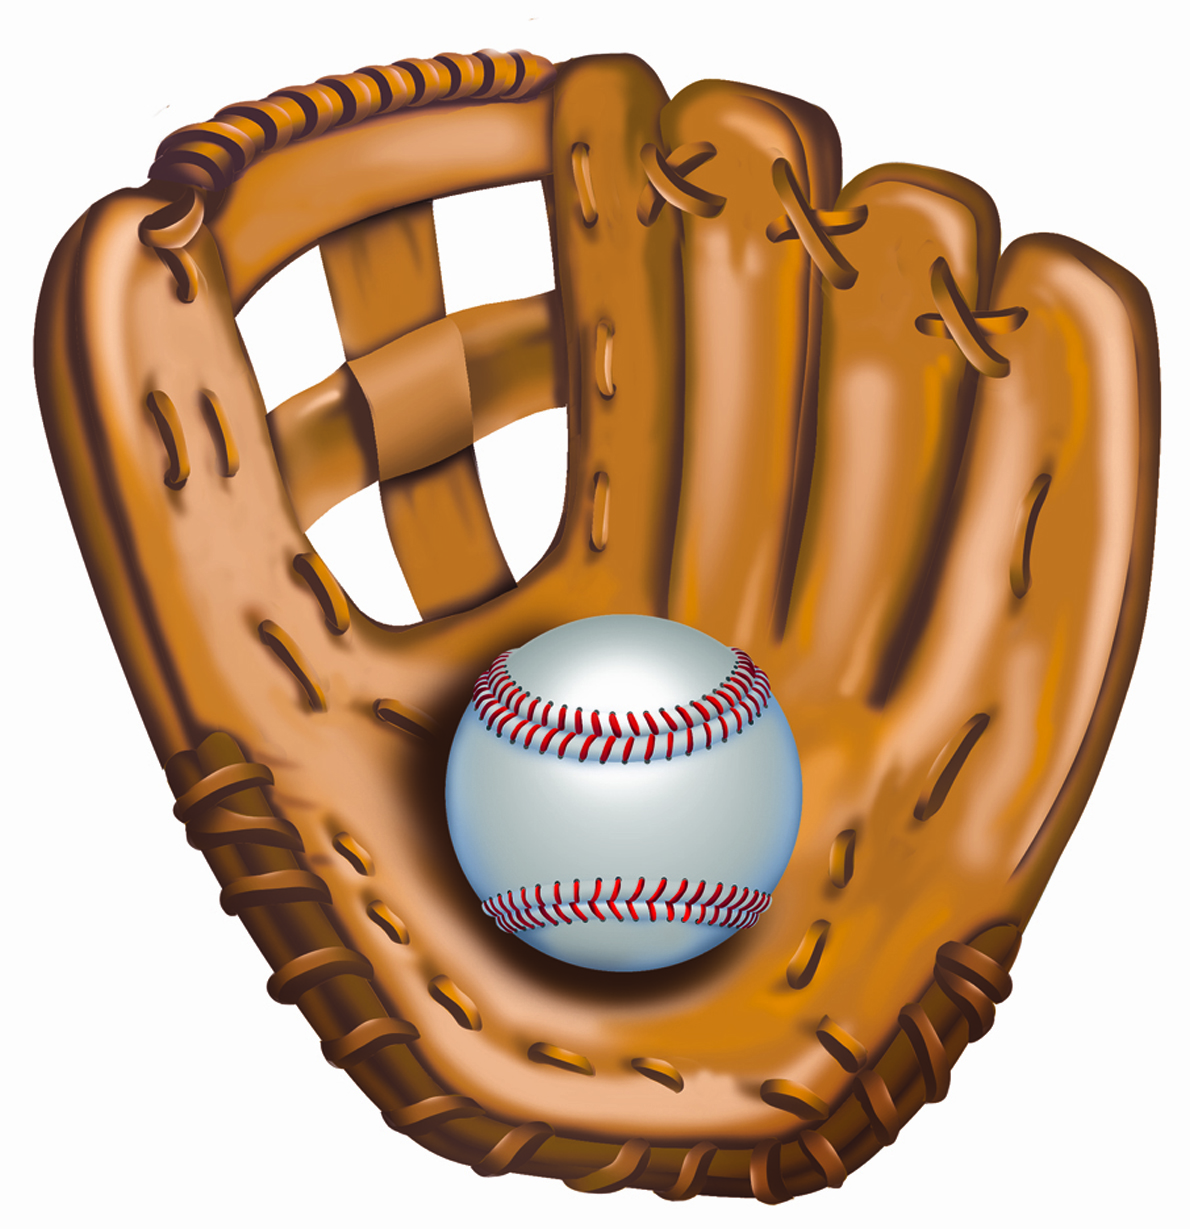 Glove clipart baseball equipment Shower and Google Boy glove